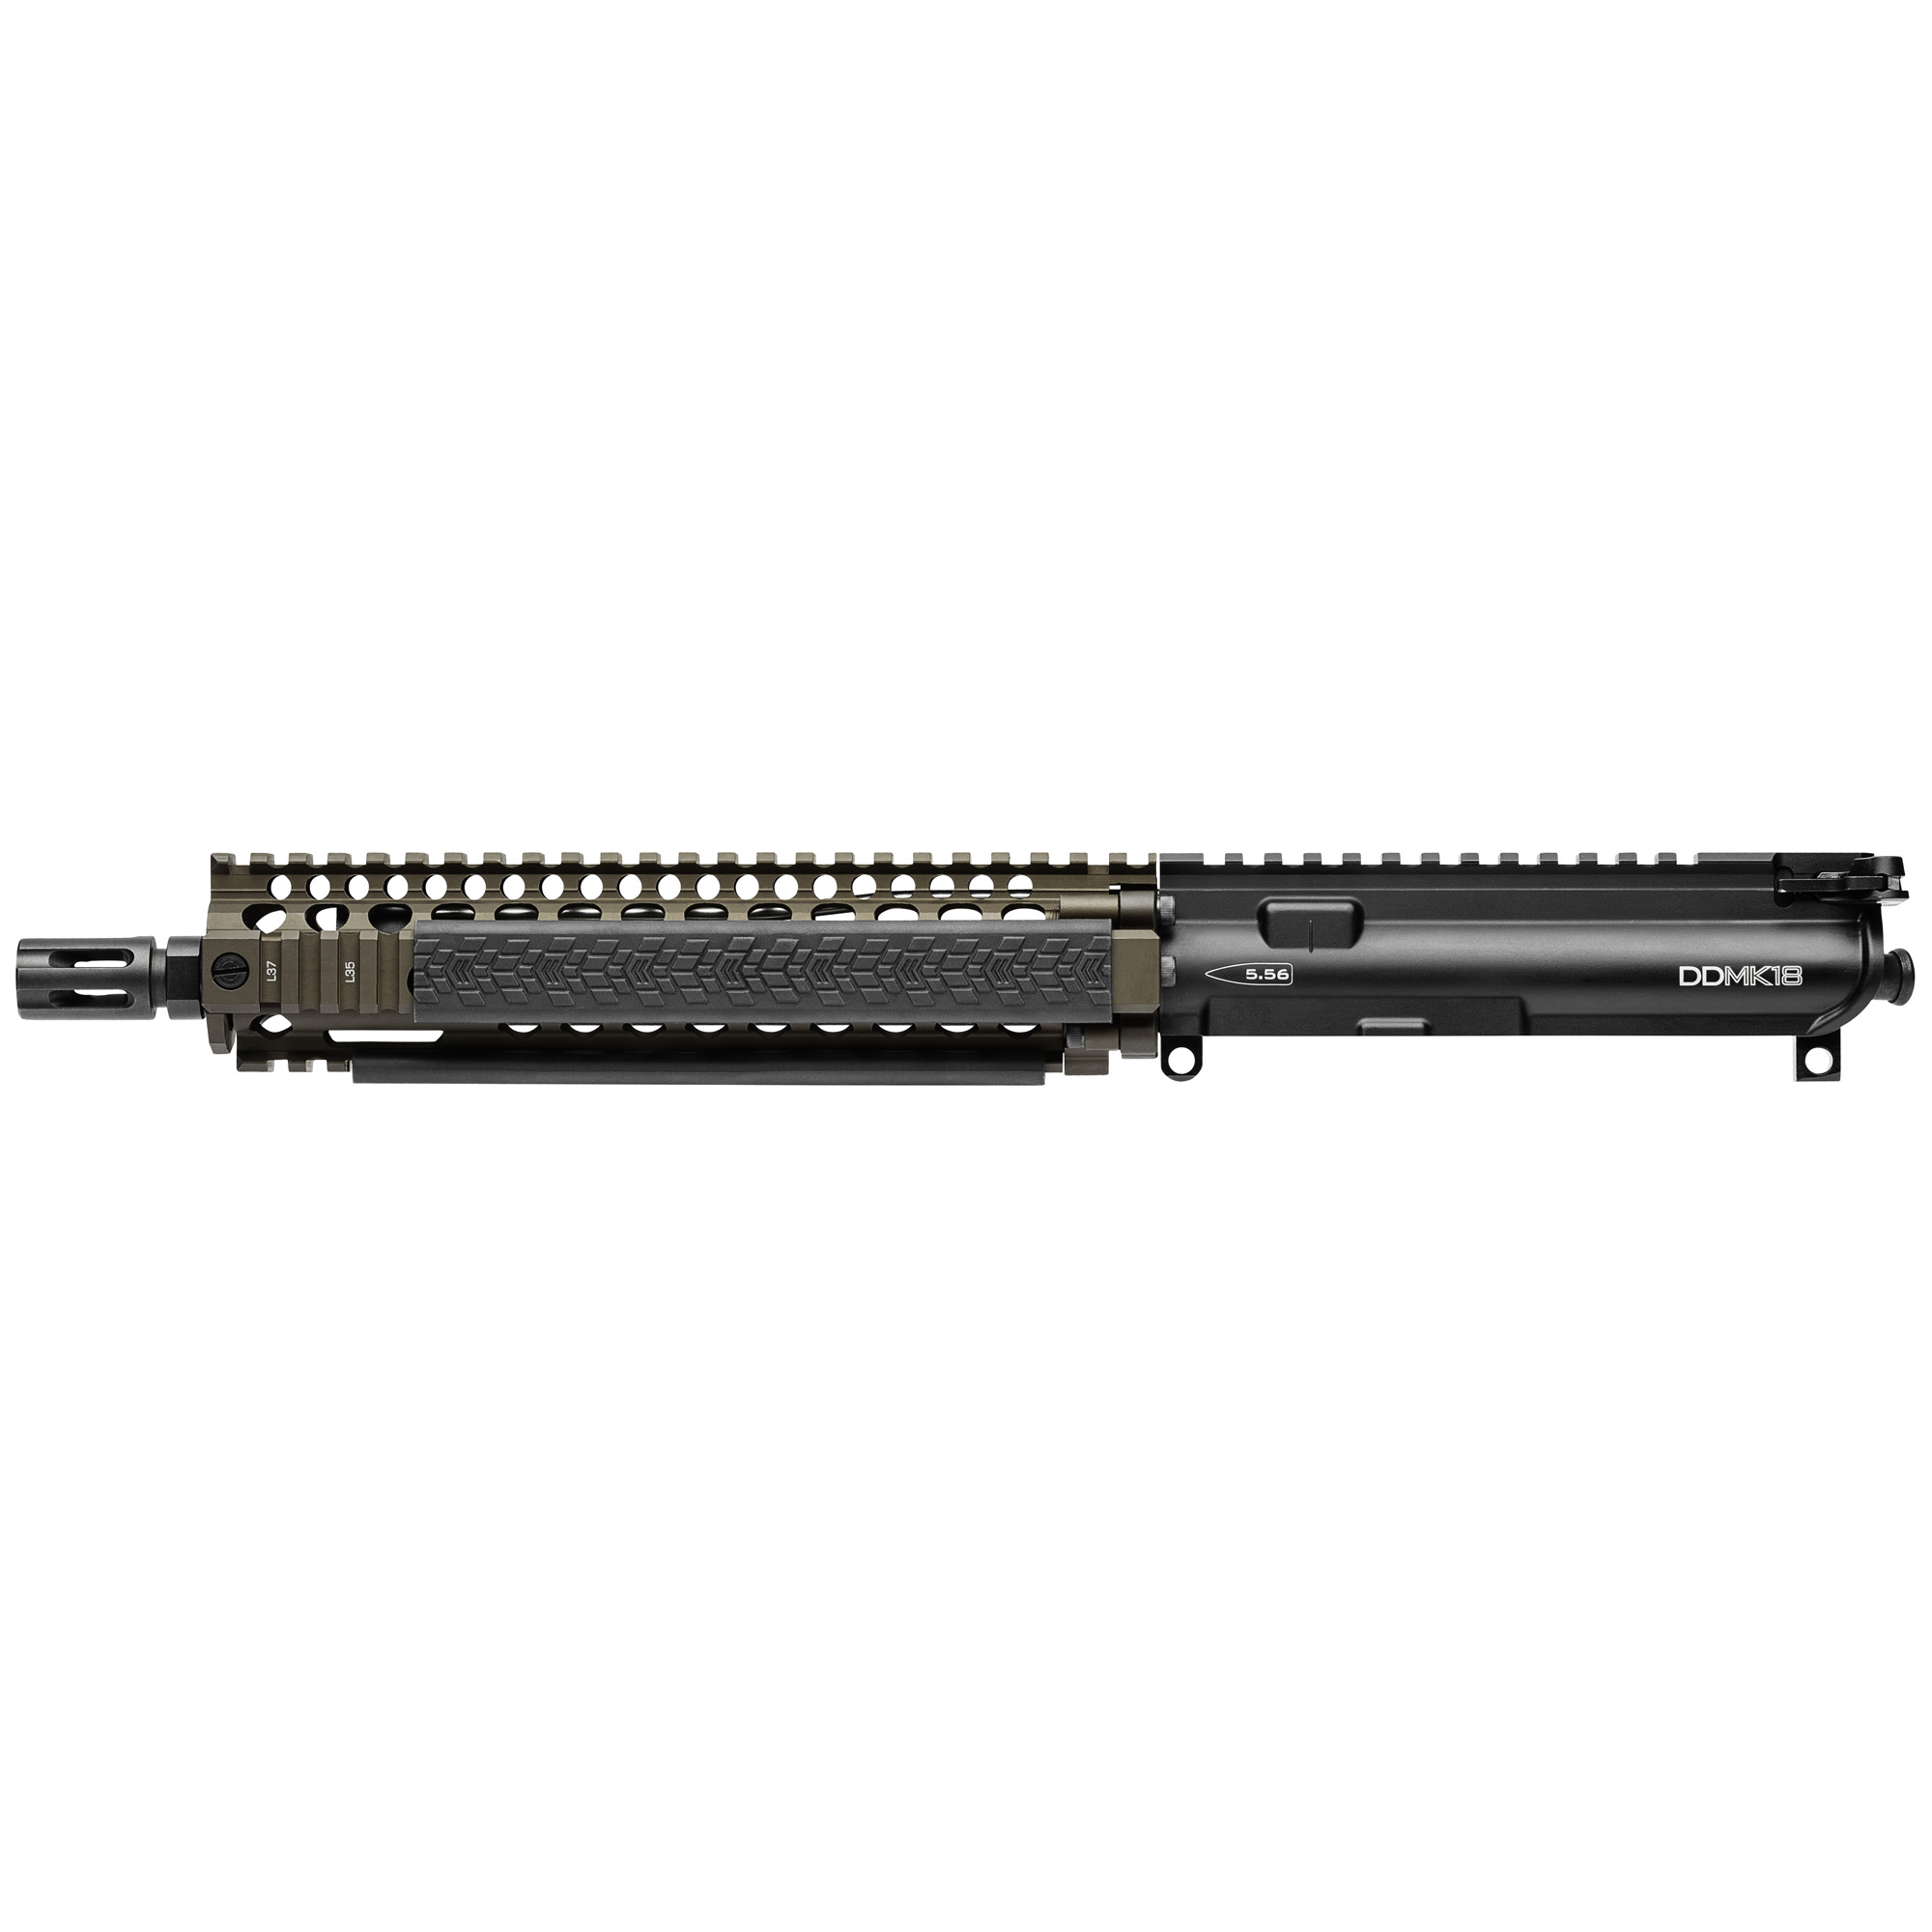 "Use what ""THEY"" use. The Daniel Defense MK18 Upper Receiver Group features the railed forend Daniel Defense currently provides to USSOCOM and a 10.3"" Cold Hammer Forged Barrel. The MK18 Rail Interface System (RIS II) features the Bolt-Up System has been rigorously tested prior to fielding by USSOCOM. The 10.3"" barrel is the same length in use for the MK18 upper most commonly used for CQB operations. The new independently ambi GRIP-N-RIP Charging Handle accommodates left- and right-handed shooters and is engineered for suppressed fire"" with anti-gas features that redirect gas flow upward and away from the face and operator. All Daniel Defense complete upper receiver groups come standard with an M16 profile bolt carrier group. NFA DISCLAIMER: Once this part is assembled into a complete firearm"" it becomes a regulated item by the National Firearms Act (NFA). Please check with your local and state municipalities for any further regulatory requirements. It is the buyer's responsibility to make sure they comply with all NFA rules and applicable laws."